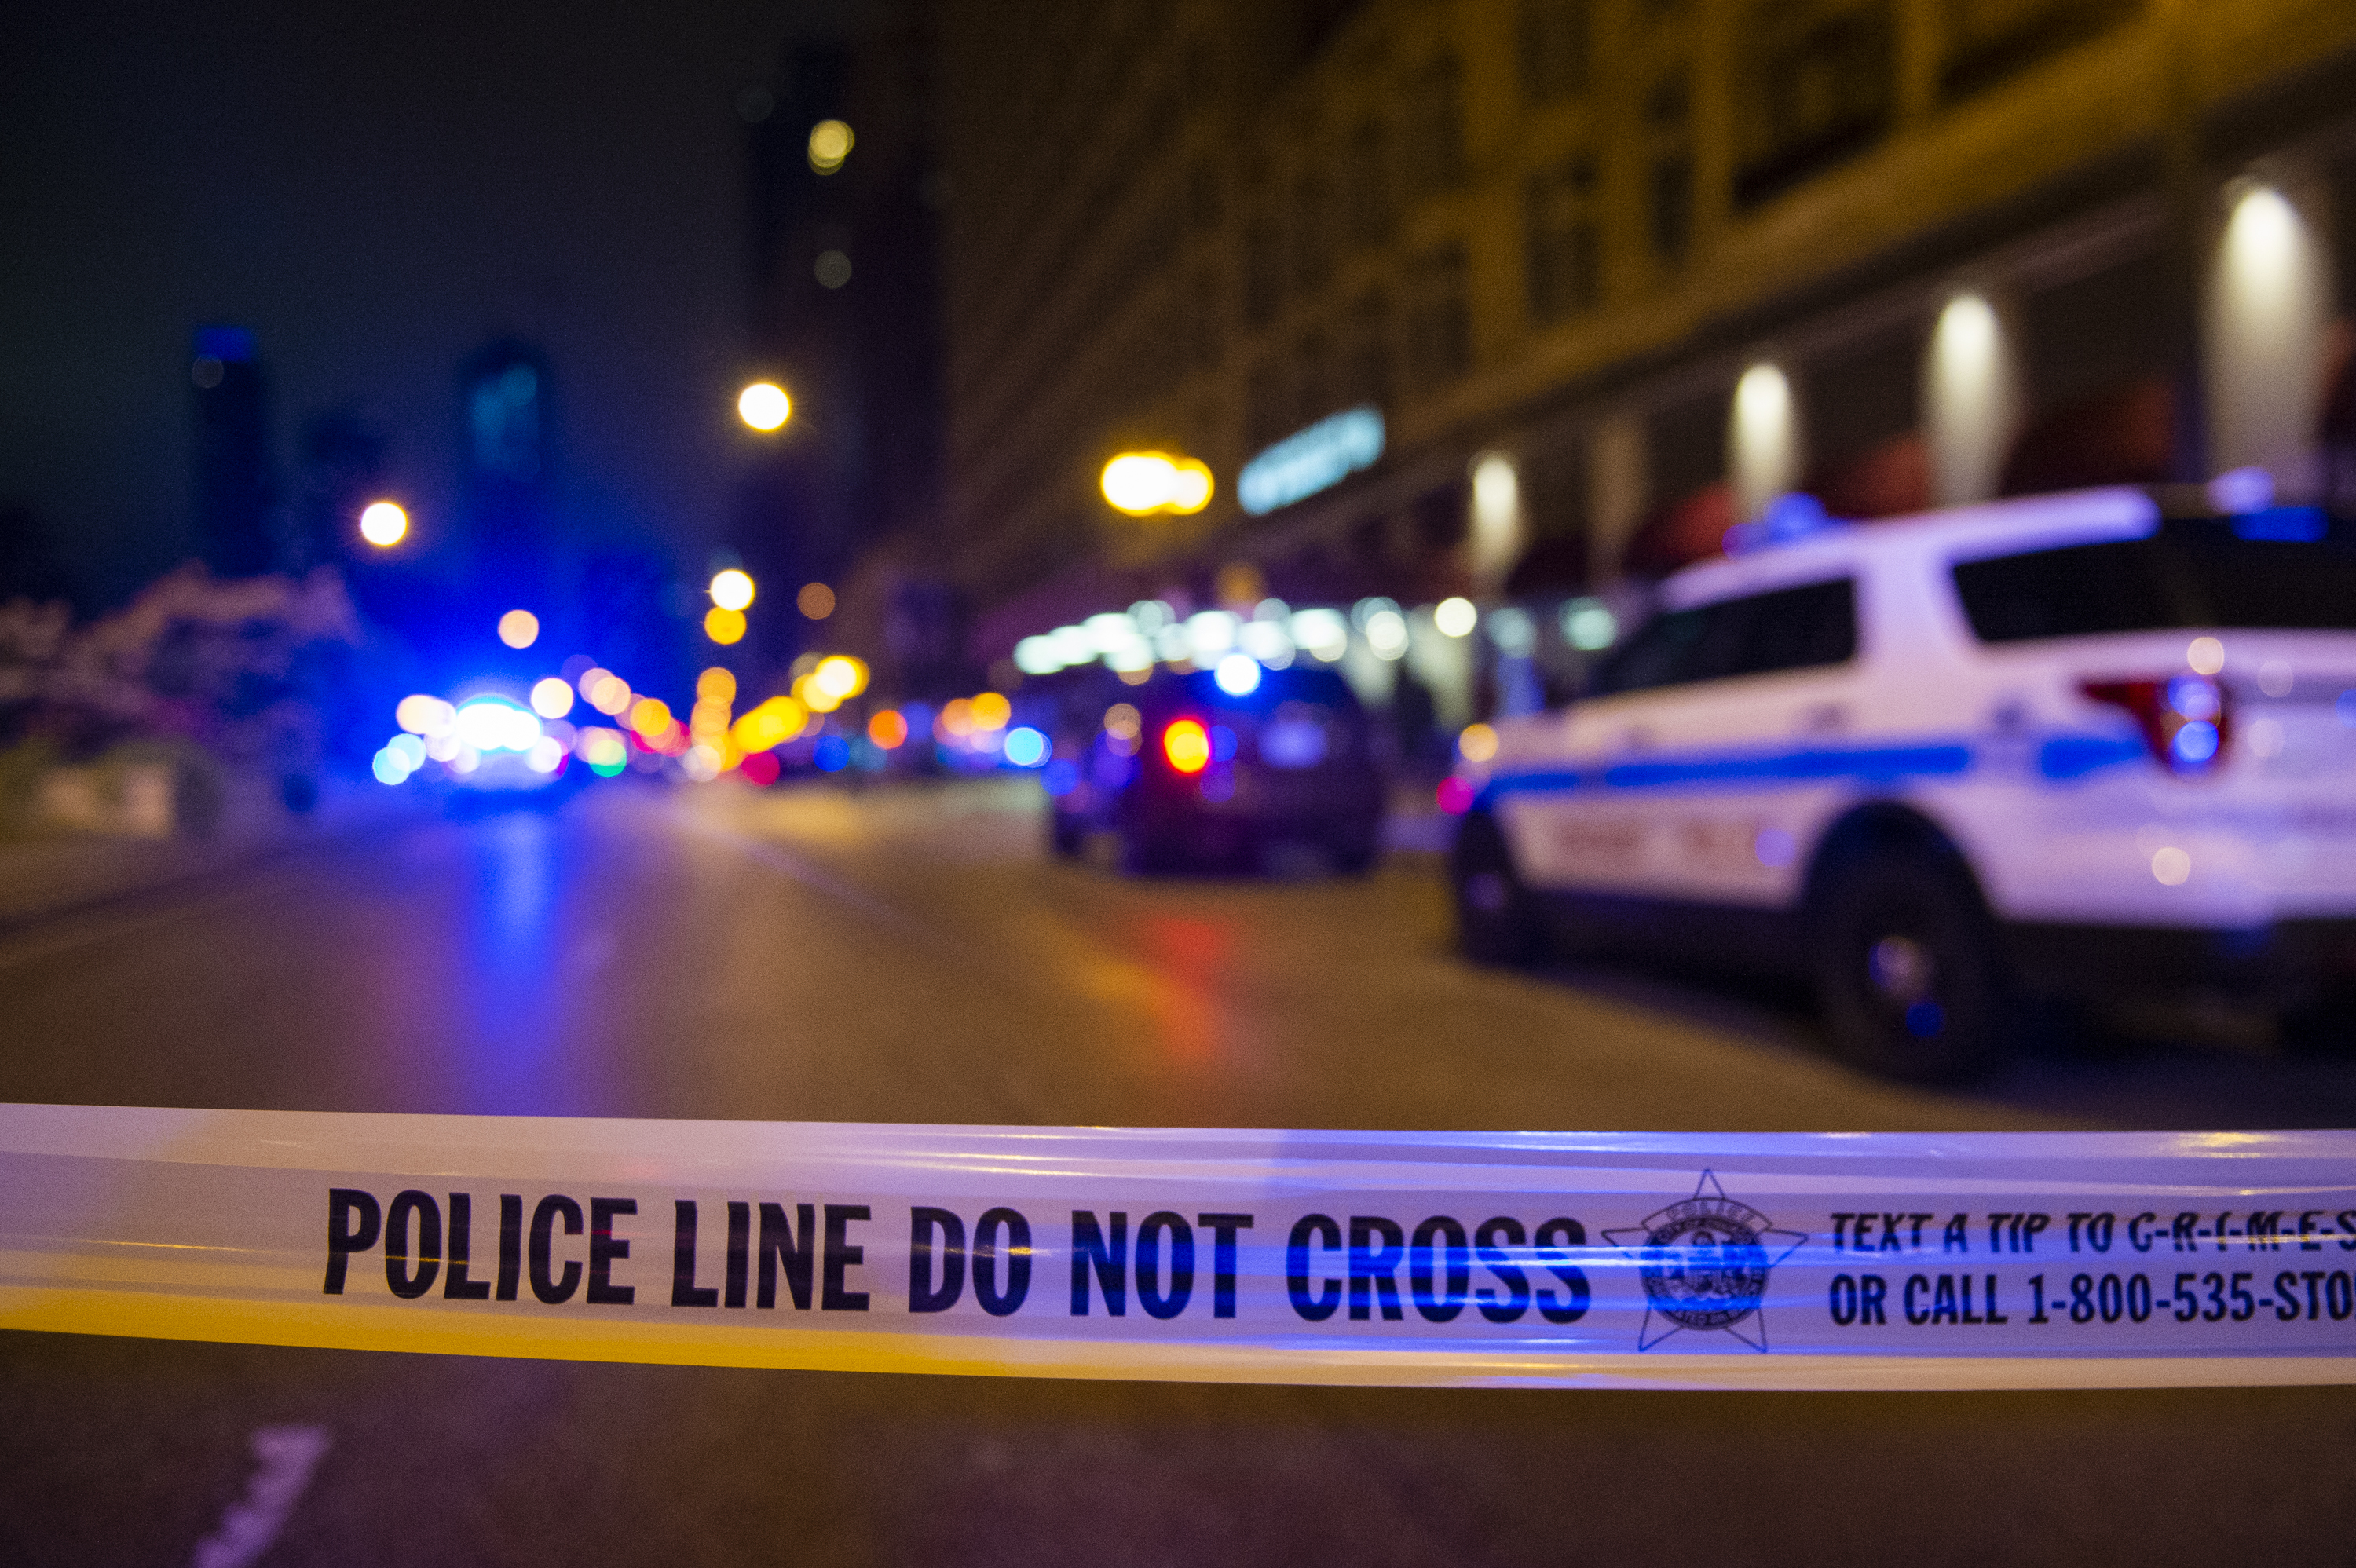 Police are warning businesses about a series of burglaries Nov. 22, 2019, at cellphone stores in Lincoln Park, Belmont Central, Irving Park and Greektown.